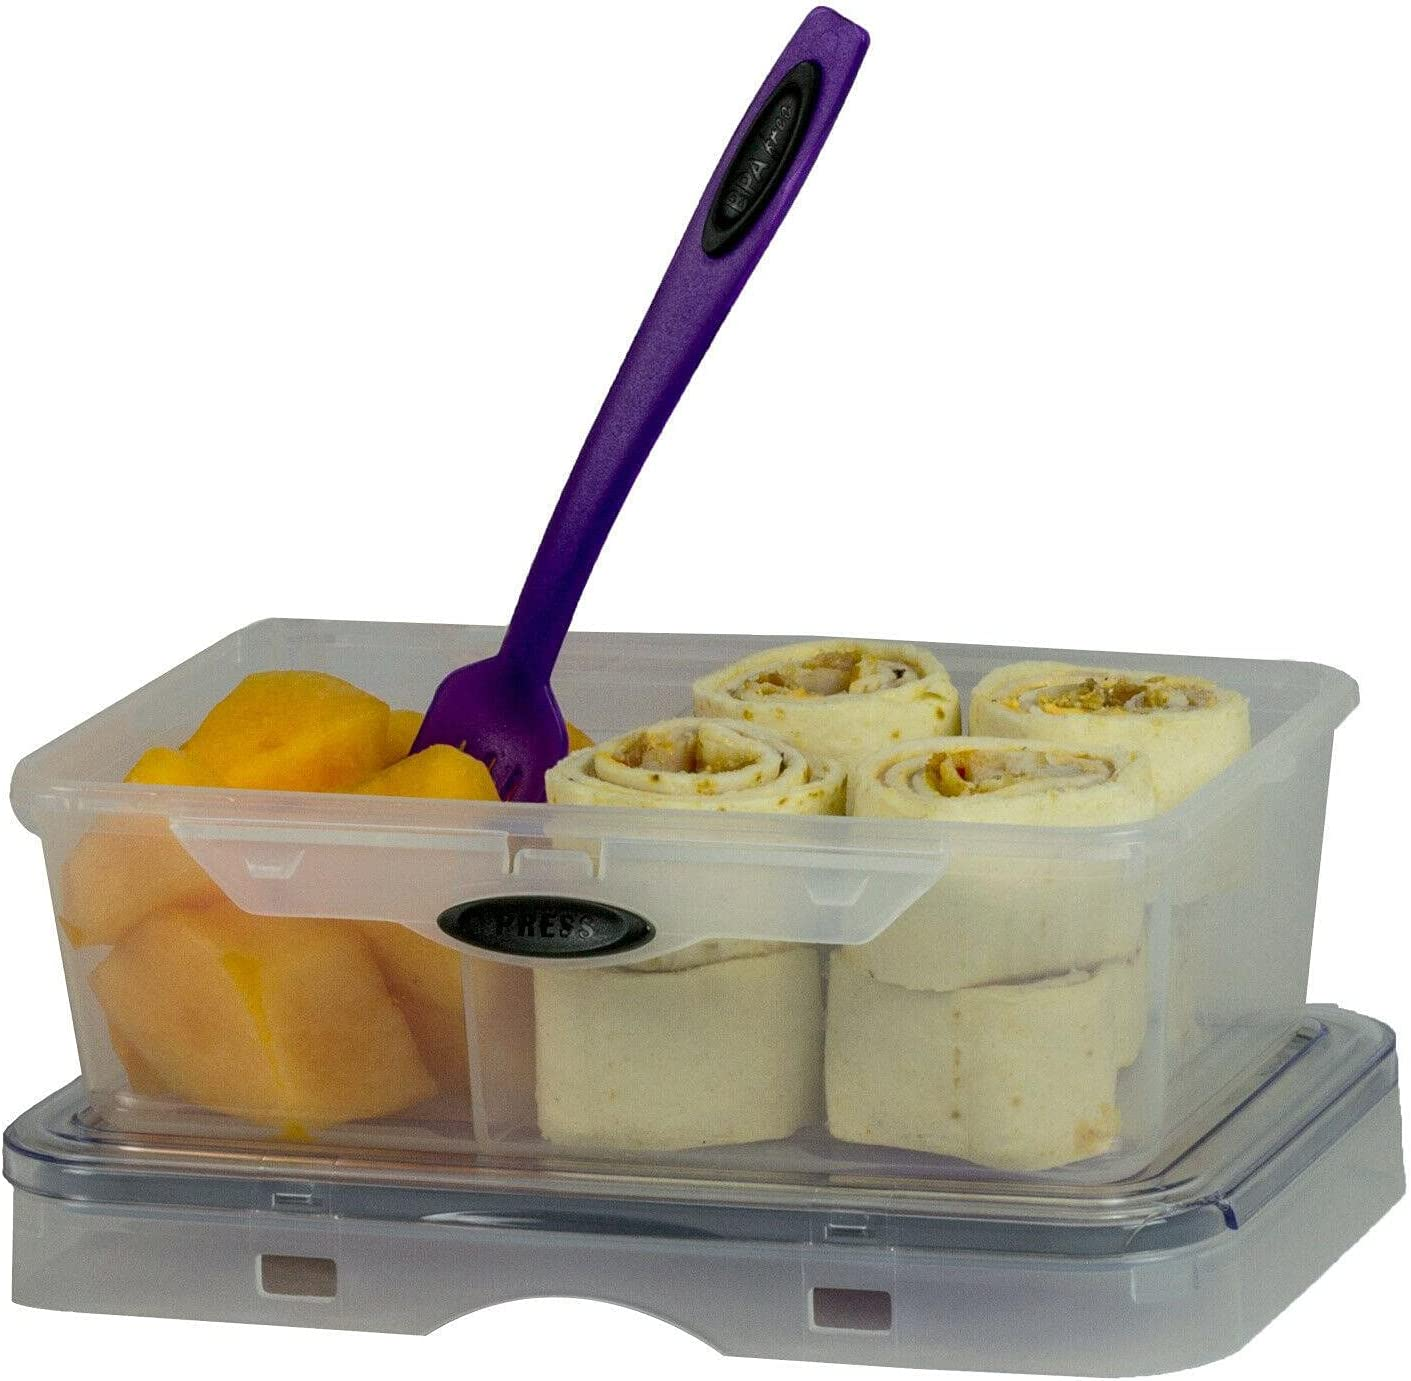 Storage Plastic 67% OFF of fixed price Year-end gift Container Cutlery Set Contai with 2 Compartments